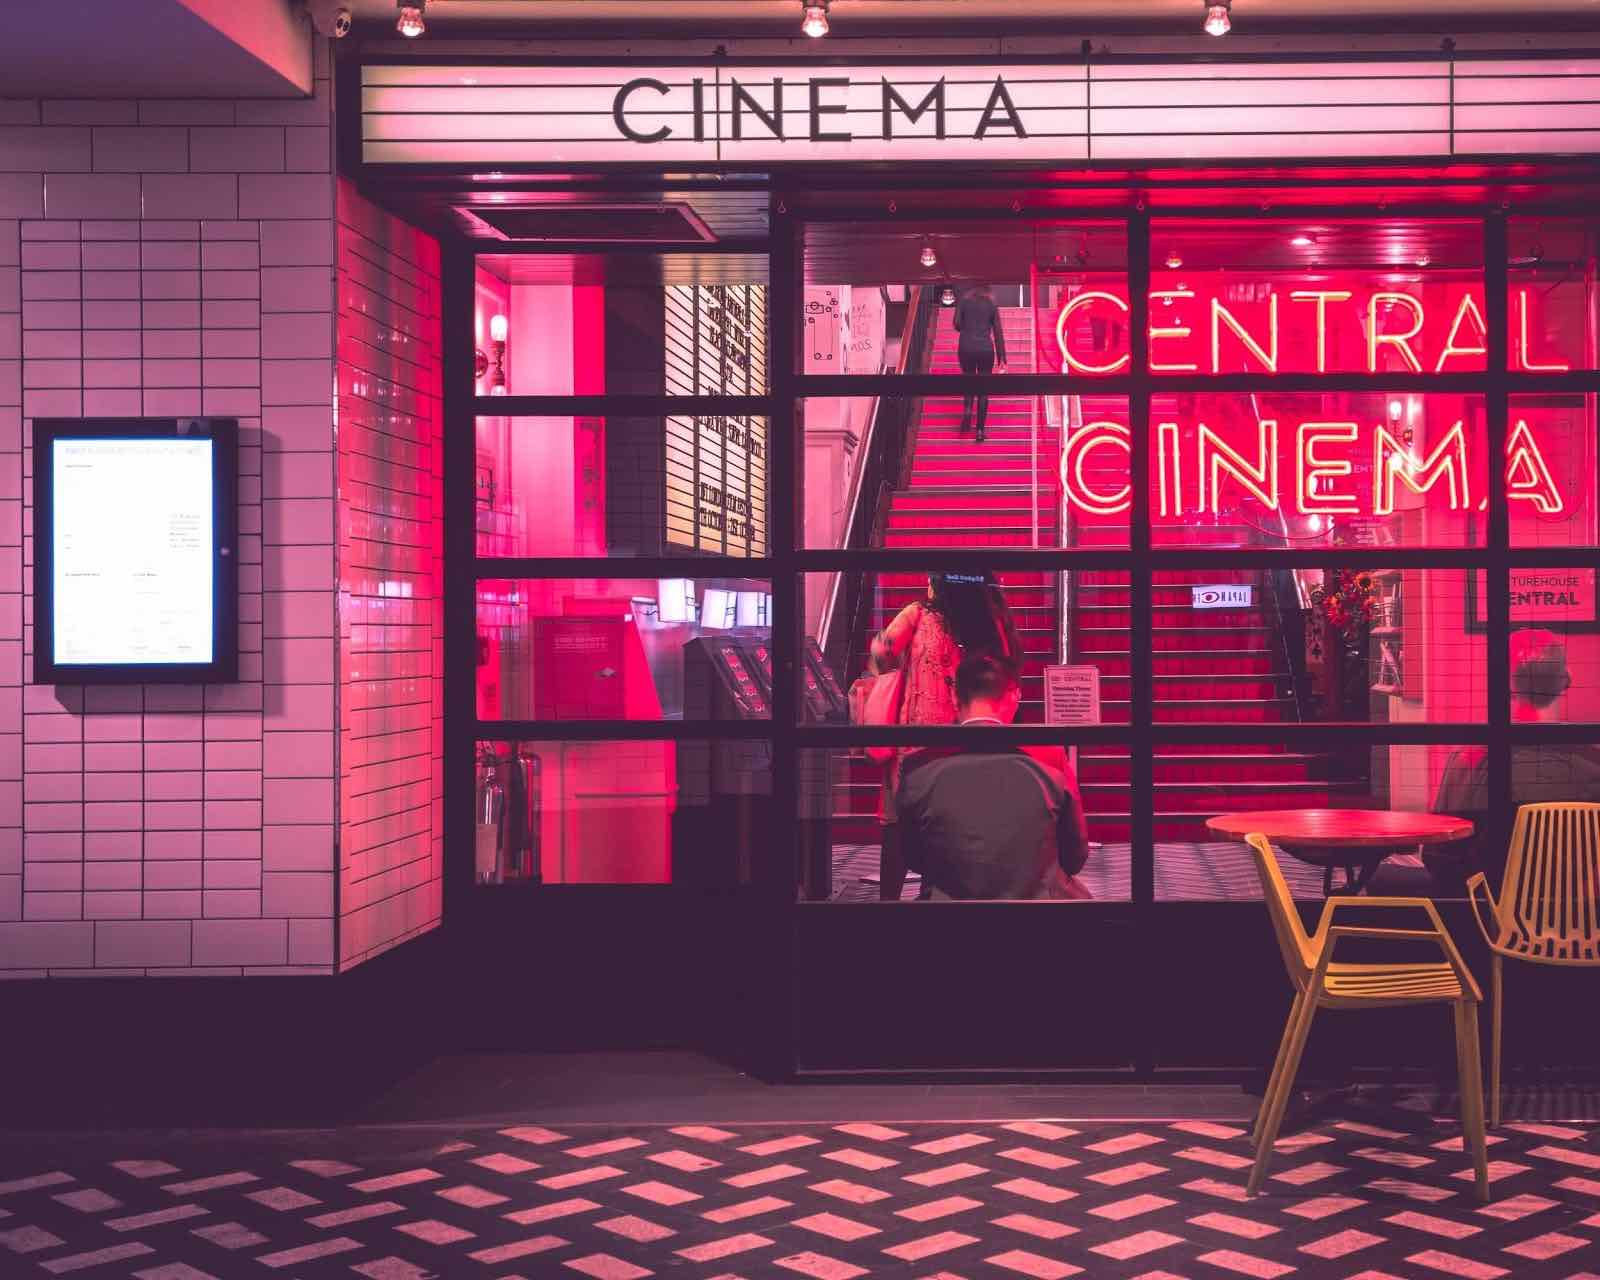 Apart from other hobbies, students still are fond of watching movies. Let's see which of the films are really worth writing about in the research papers.